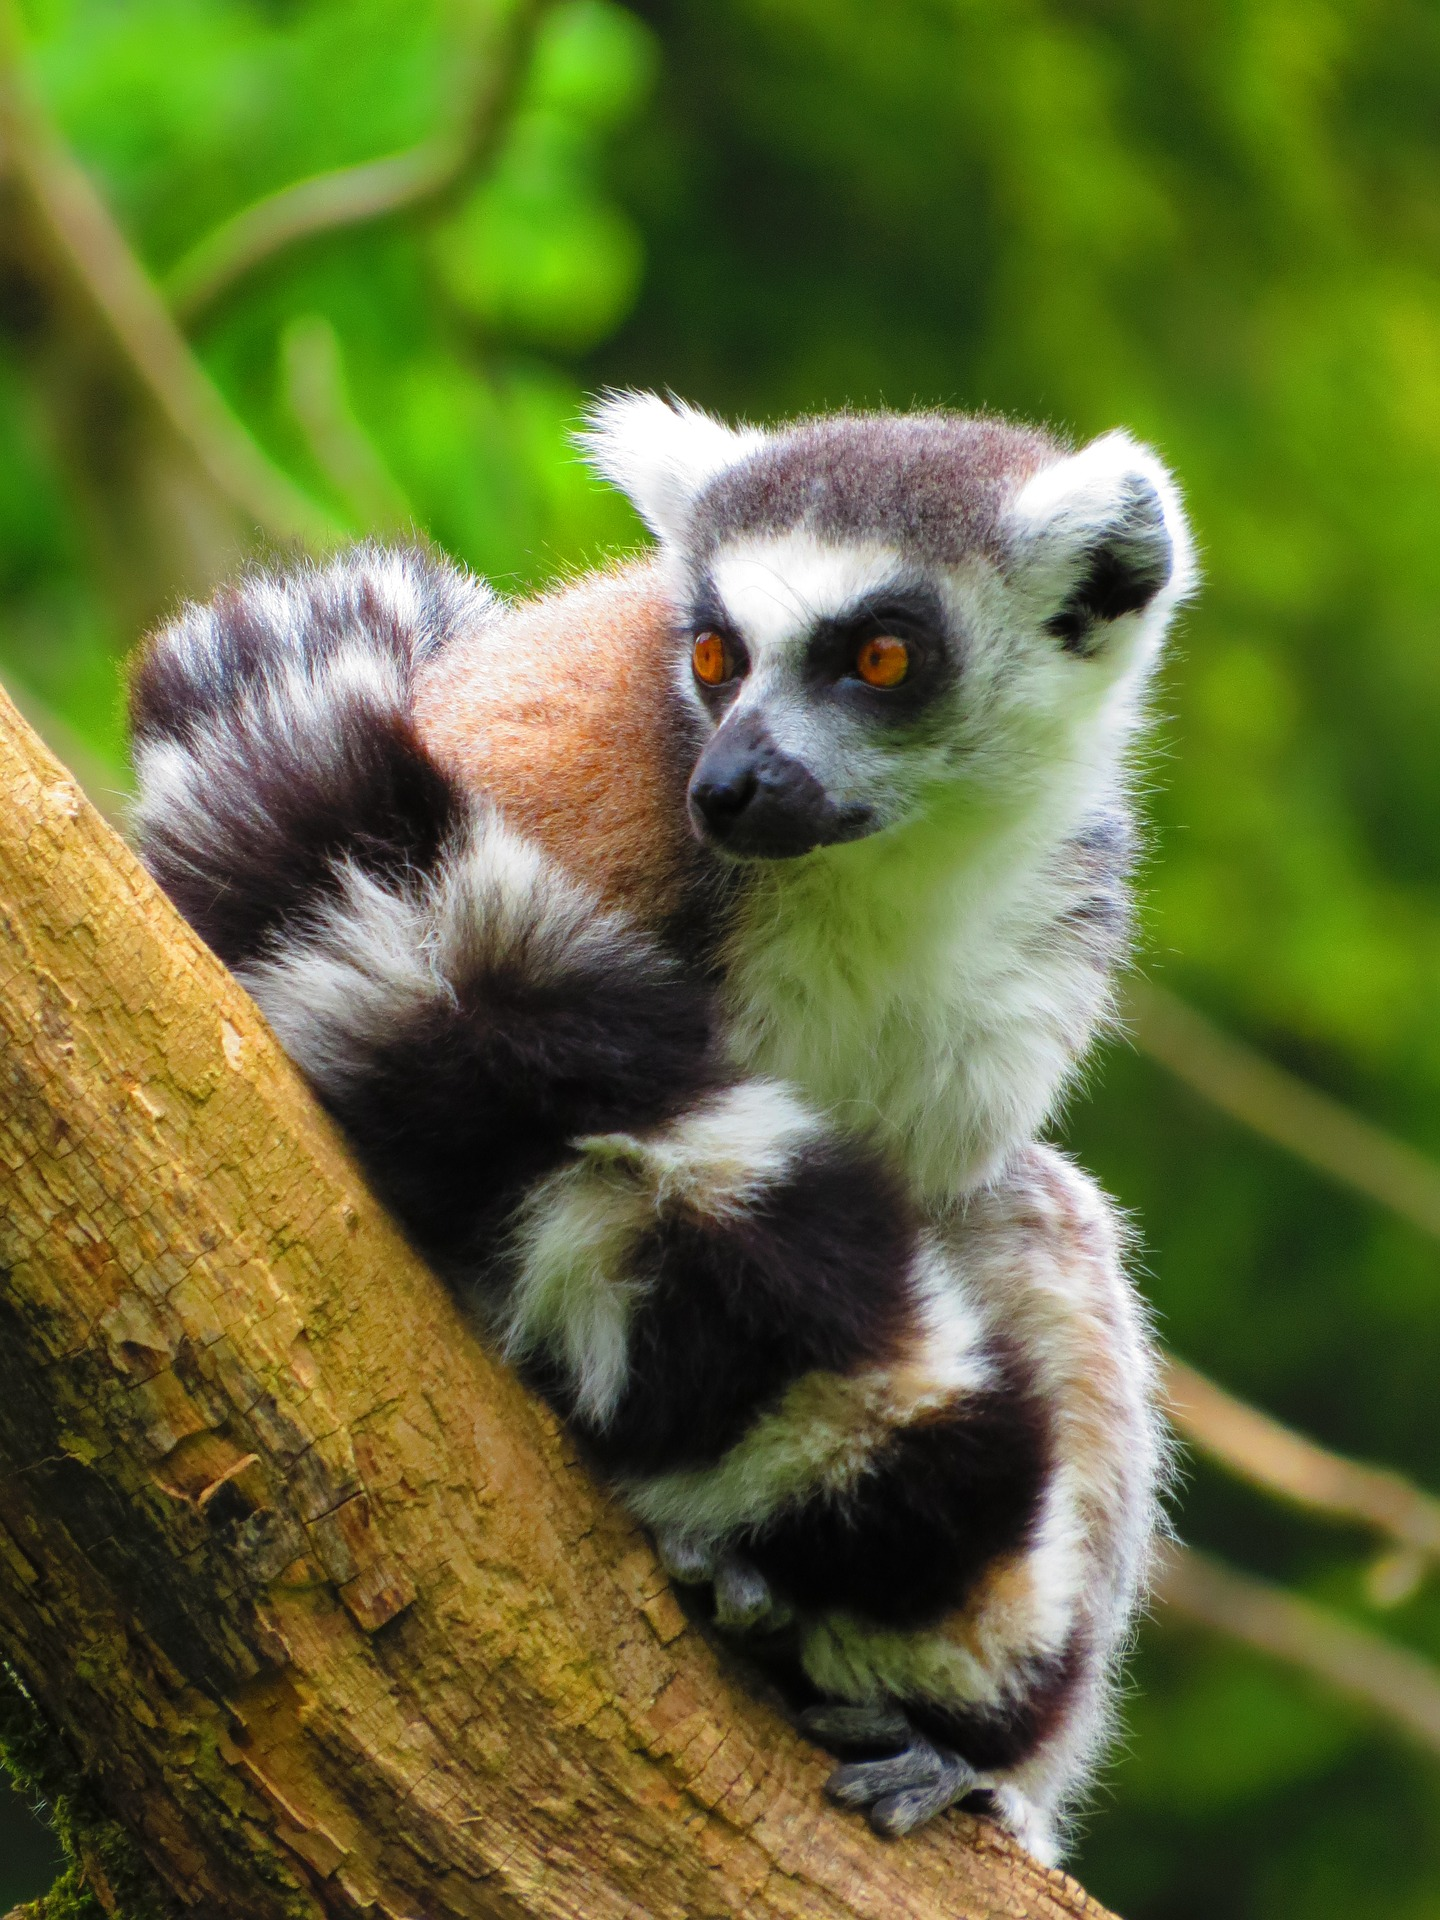 Discover Madagascar with Kenny Carlino & Nadia Eckhardt